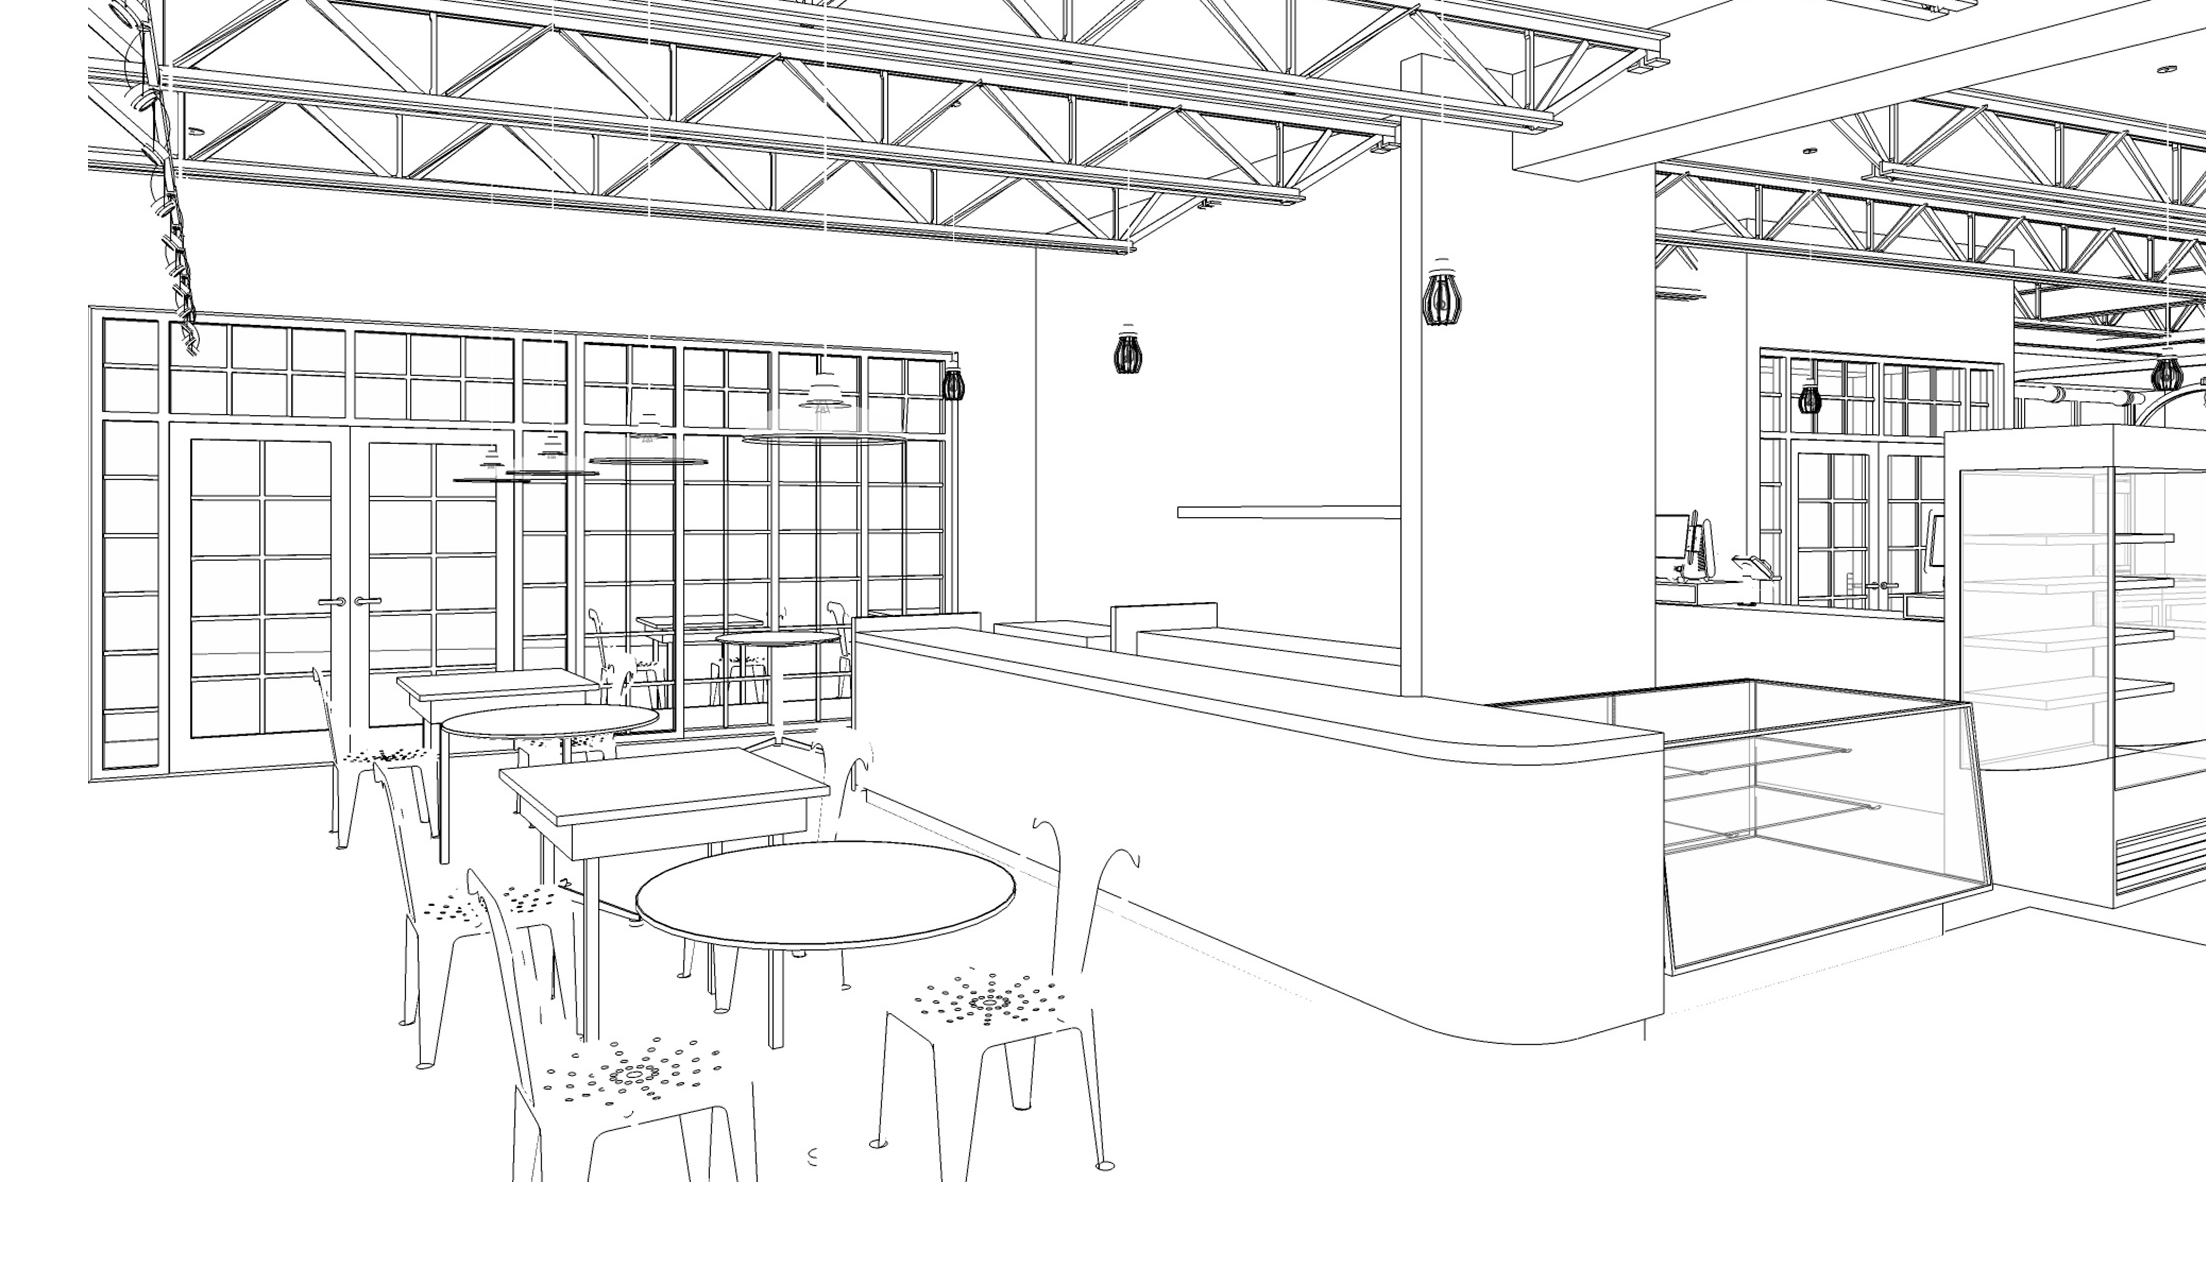 Sketch of Brothers Marketplace bakery in Medfield, MA